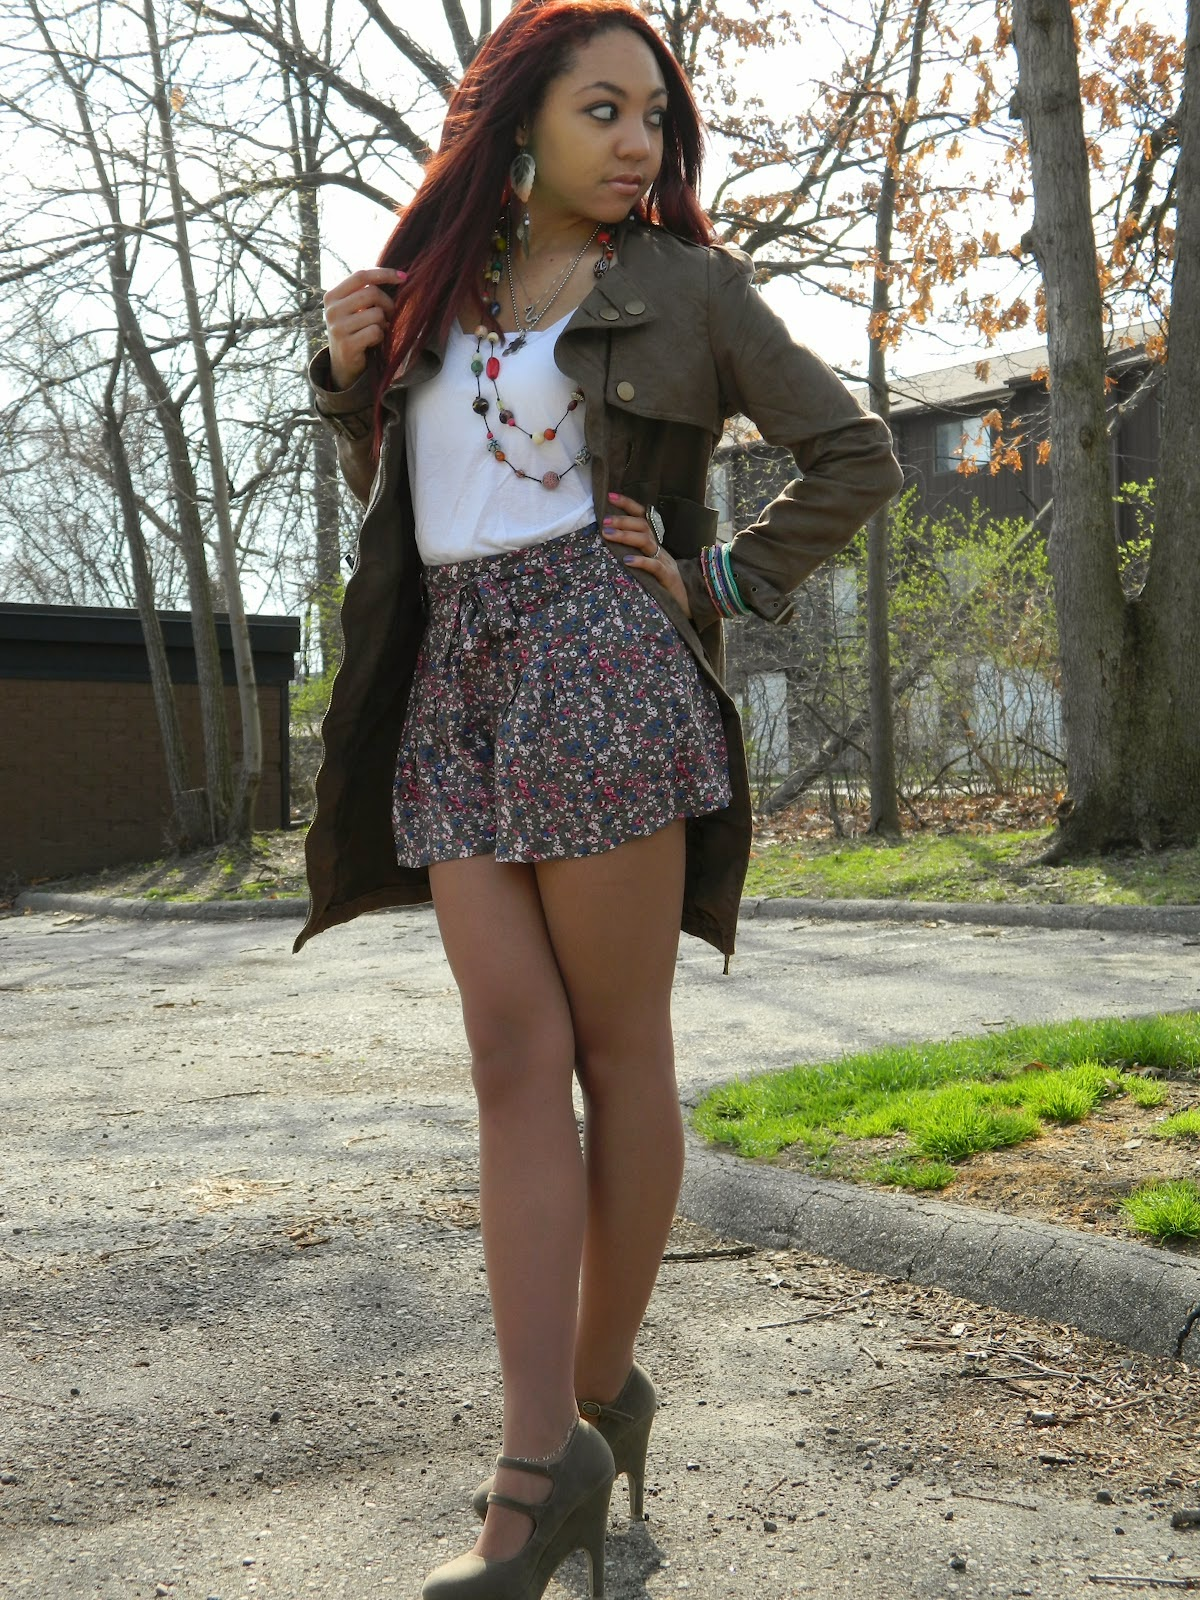 loveambam.blogspot.co.uk - Fashionmylegs : The tights and